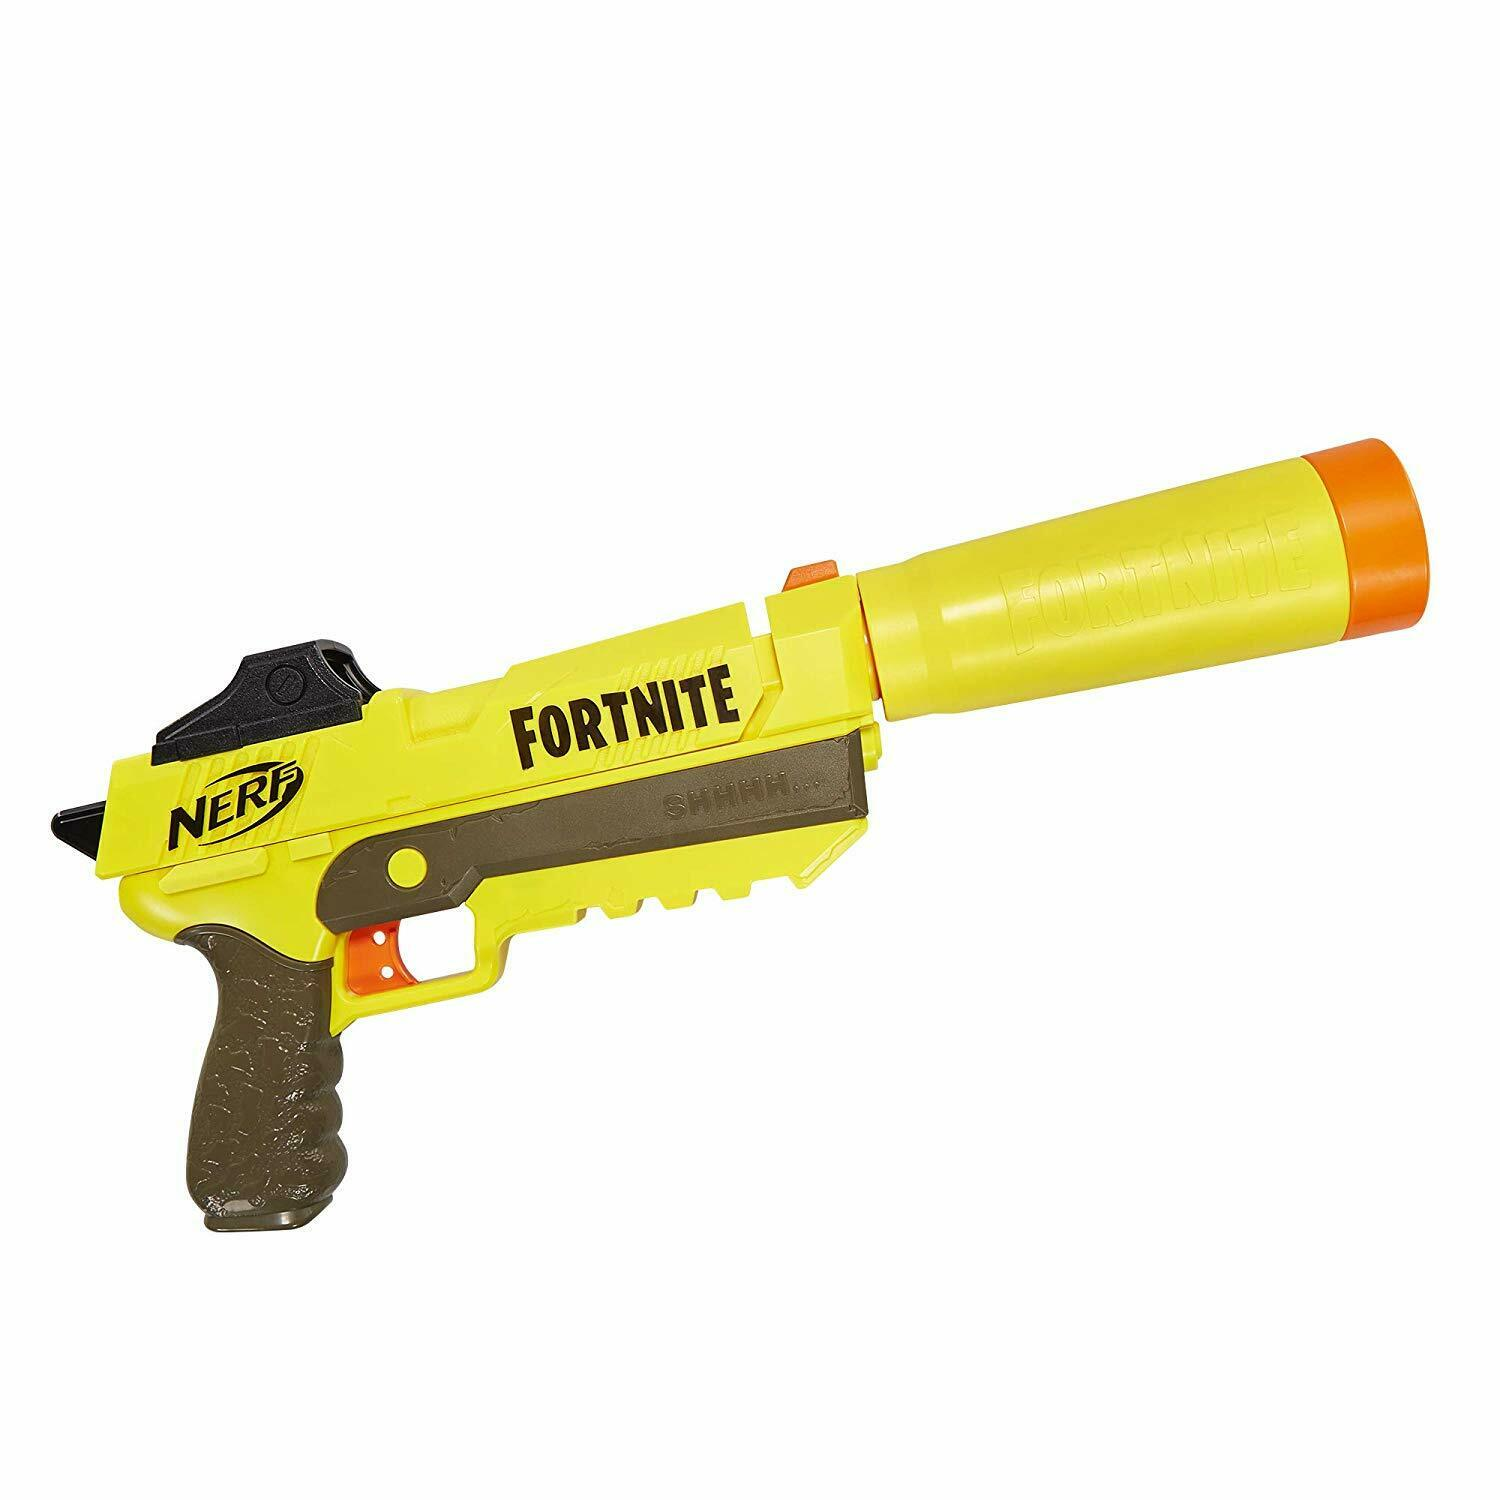 Fortnite Nerf Guns Nerf Guns For Boys Nerf Guns For Girls Ne